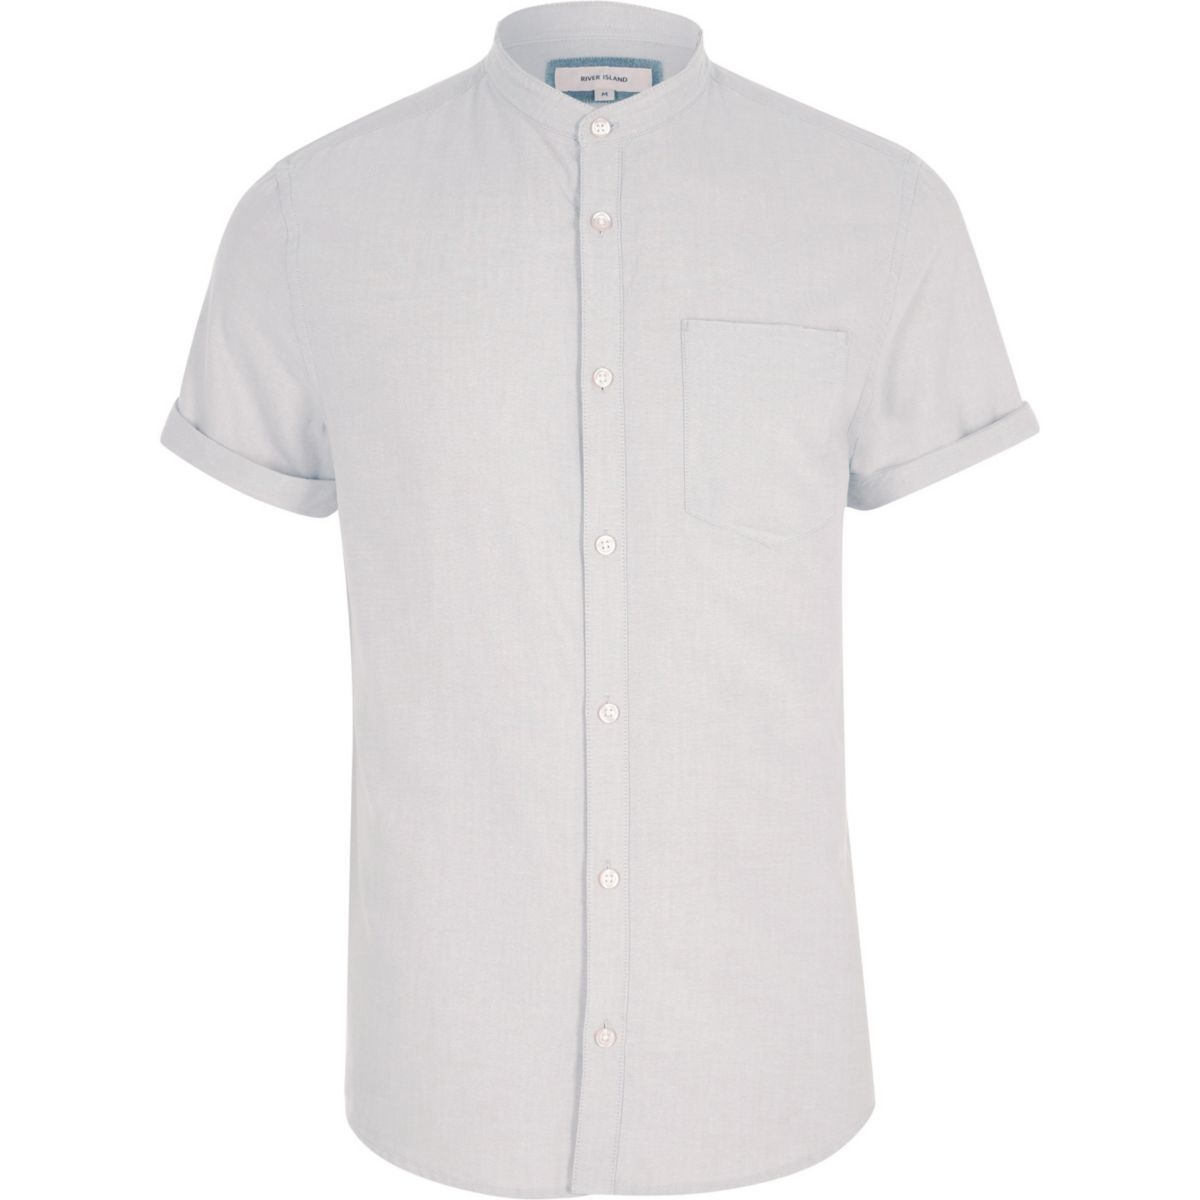 Grey short sleeve oxford grandad shirt shirts sale men for Short sleeve grandad shirt